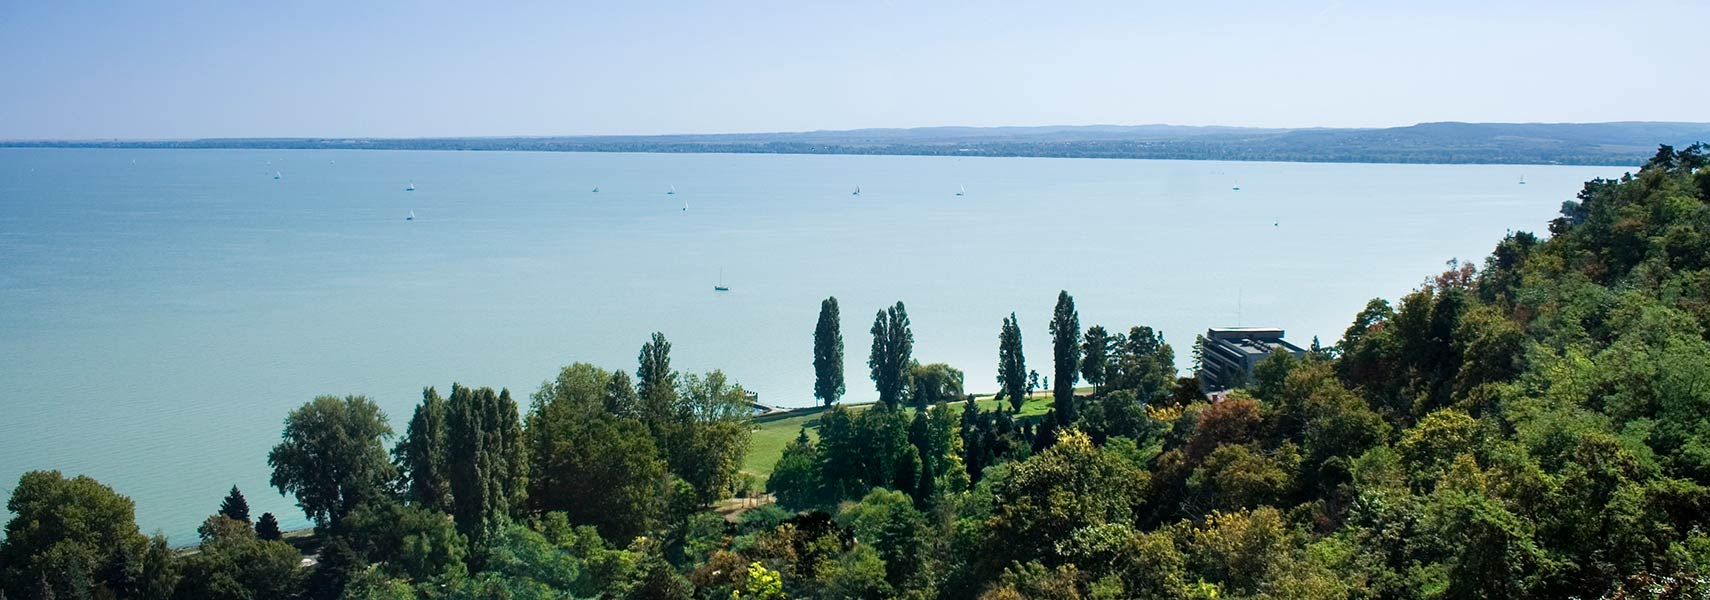 Lake Balaton at Tihany, Hungary